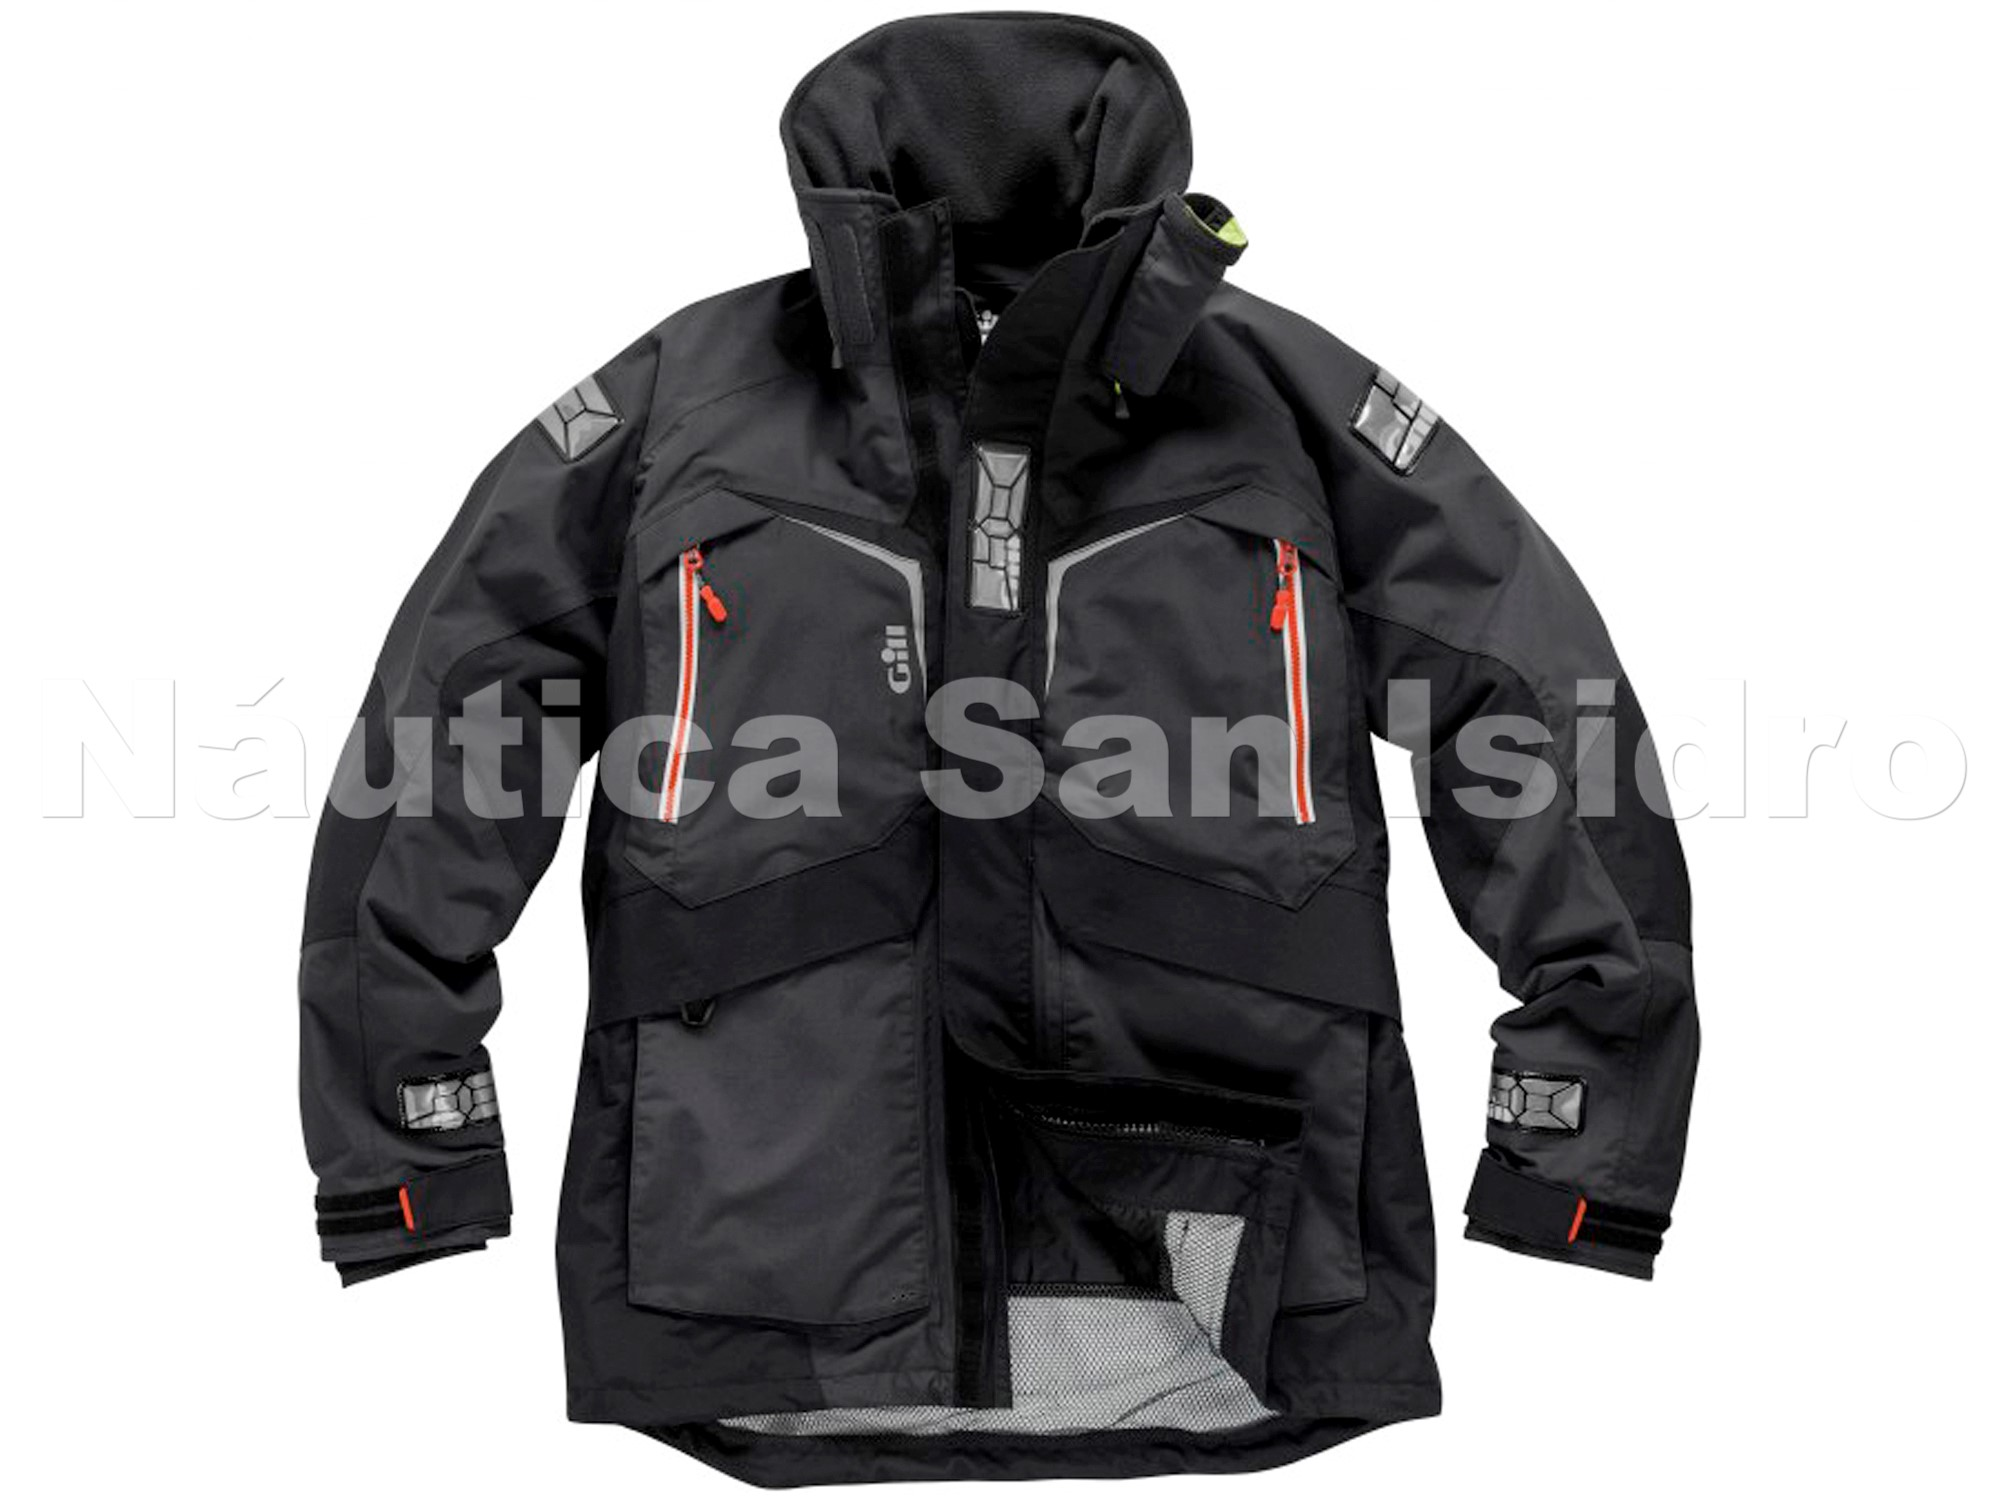 campera-gill-offshore-OS23-4.jpg